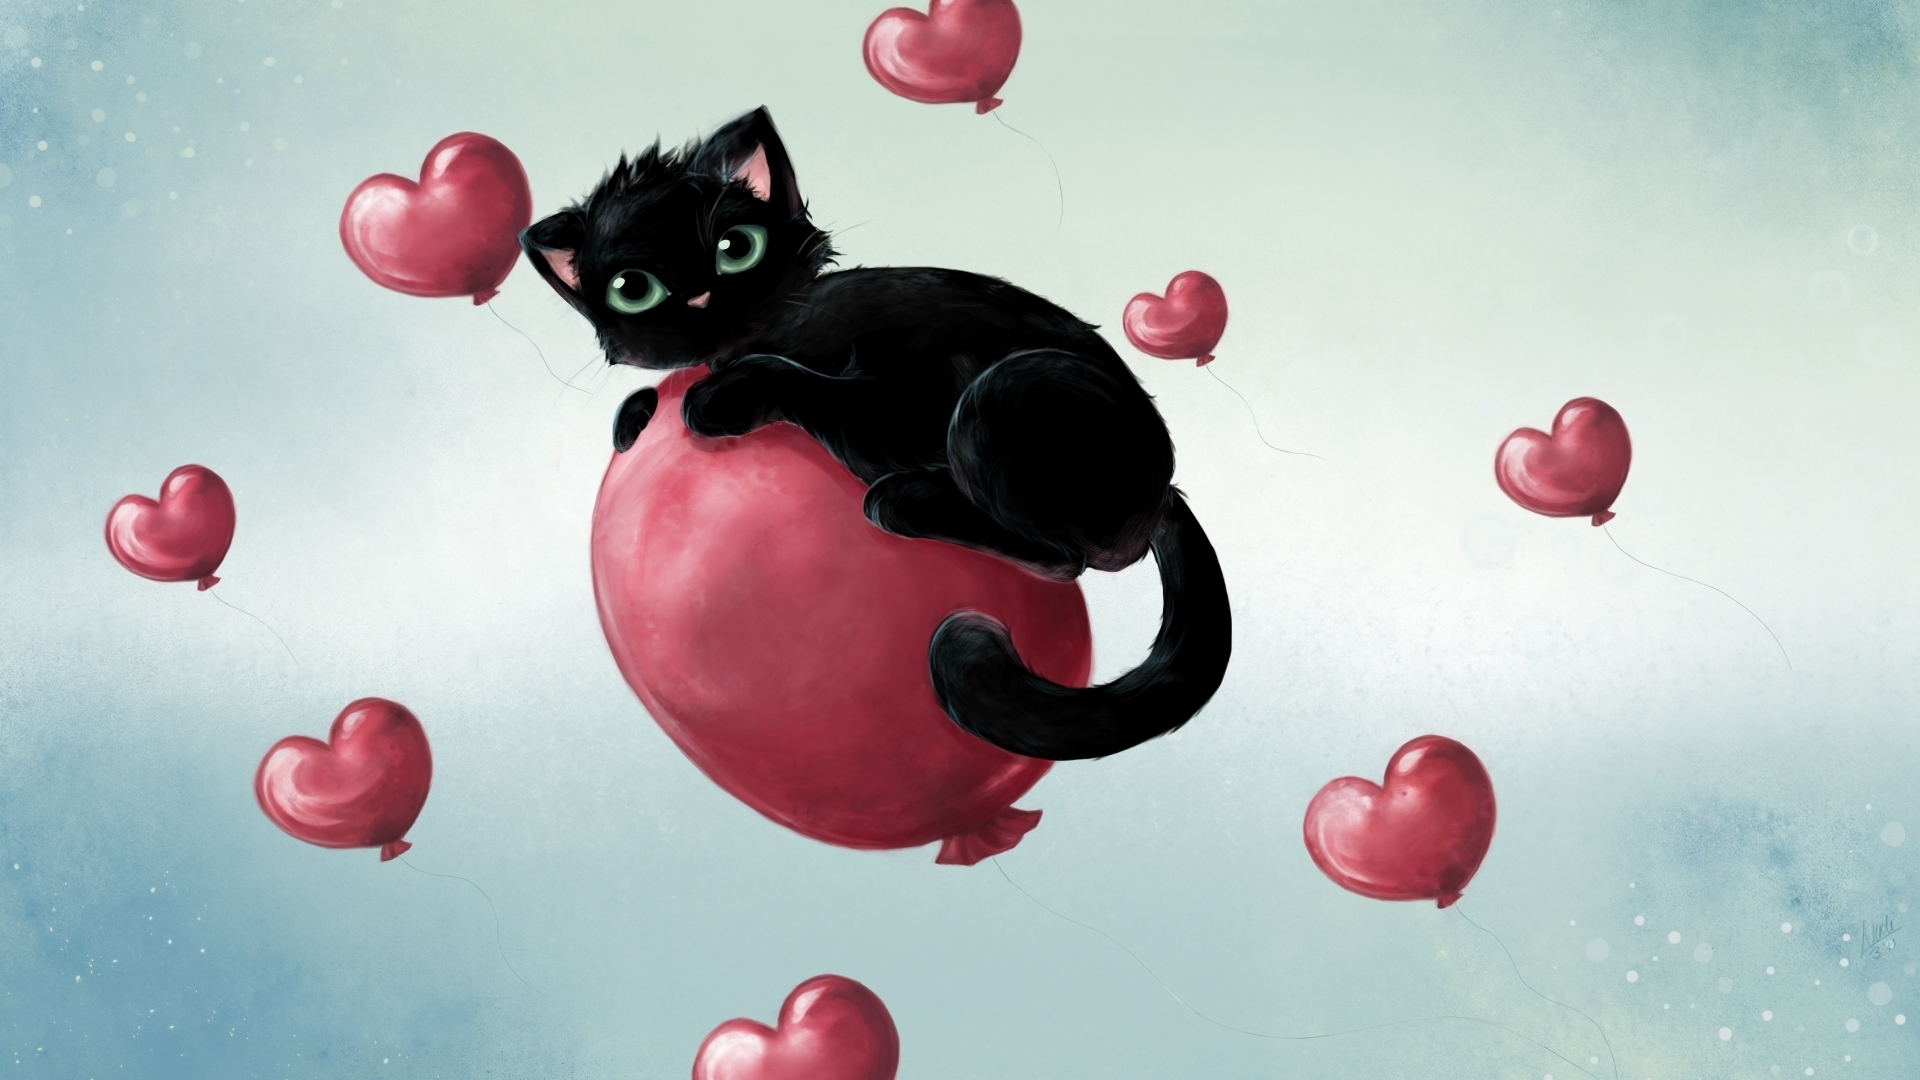 21206 download wallpaper Animals, Cats, Pictures, Balloons screensavers and pictures for free